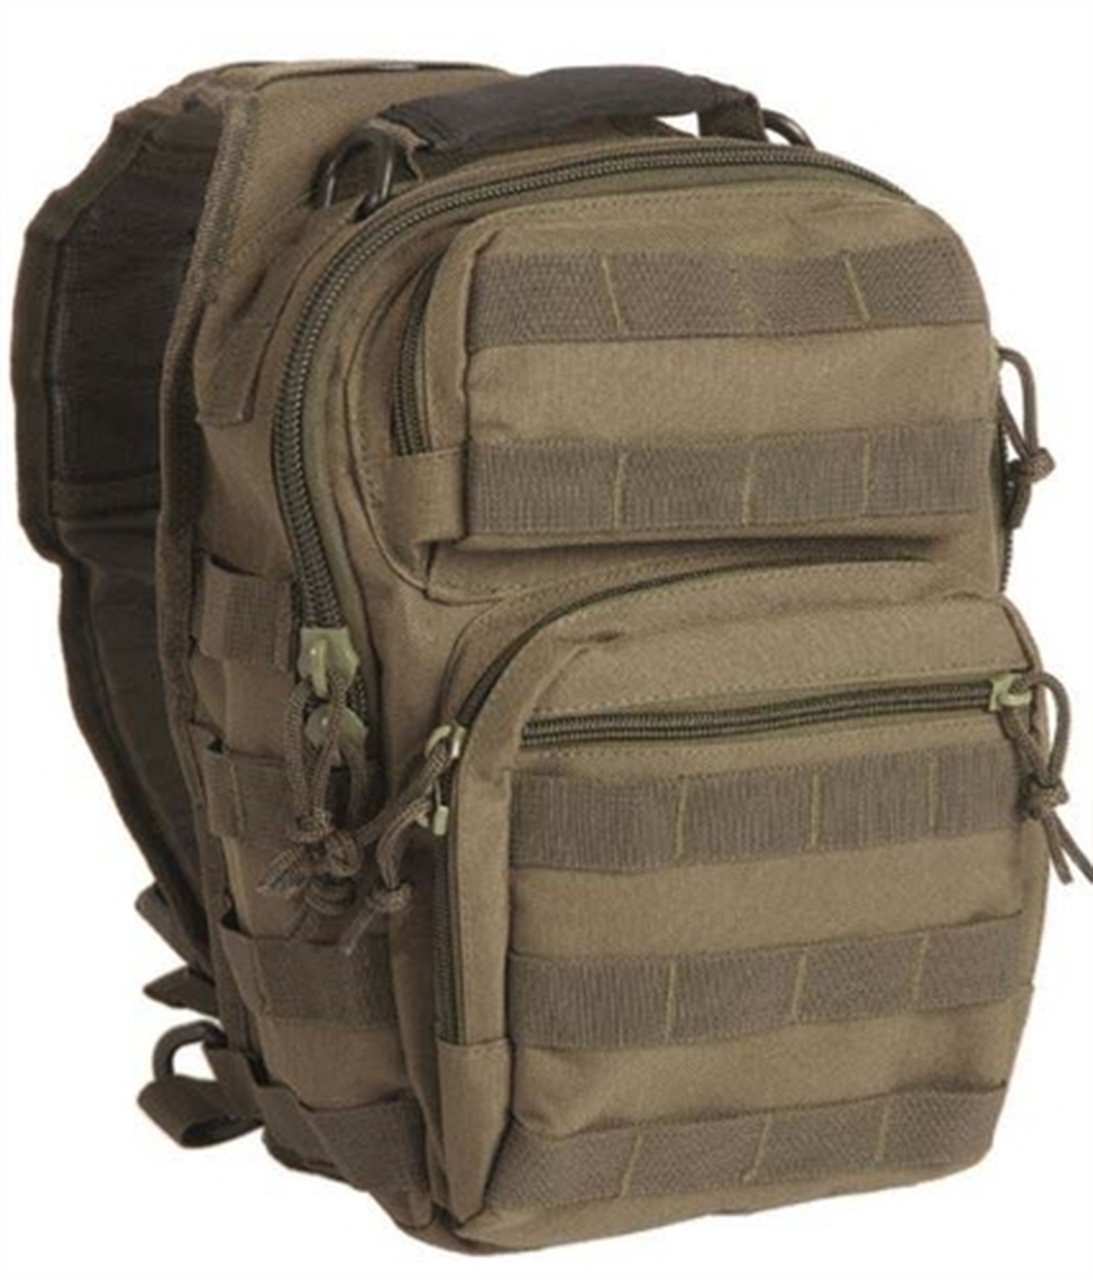 MIL-TEC Single Strap Small Assault Pack from Hessen Antique